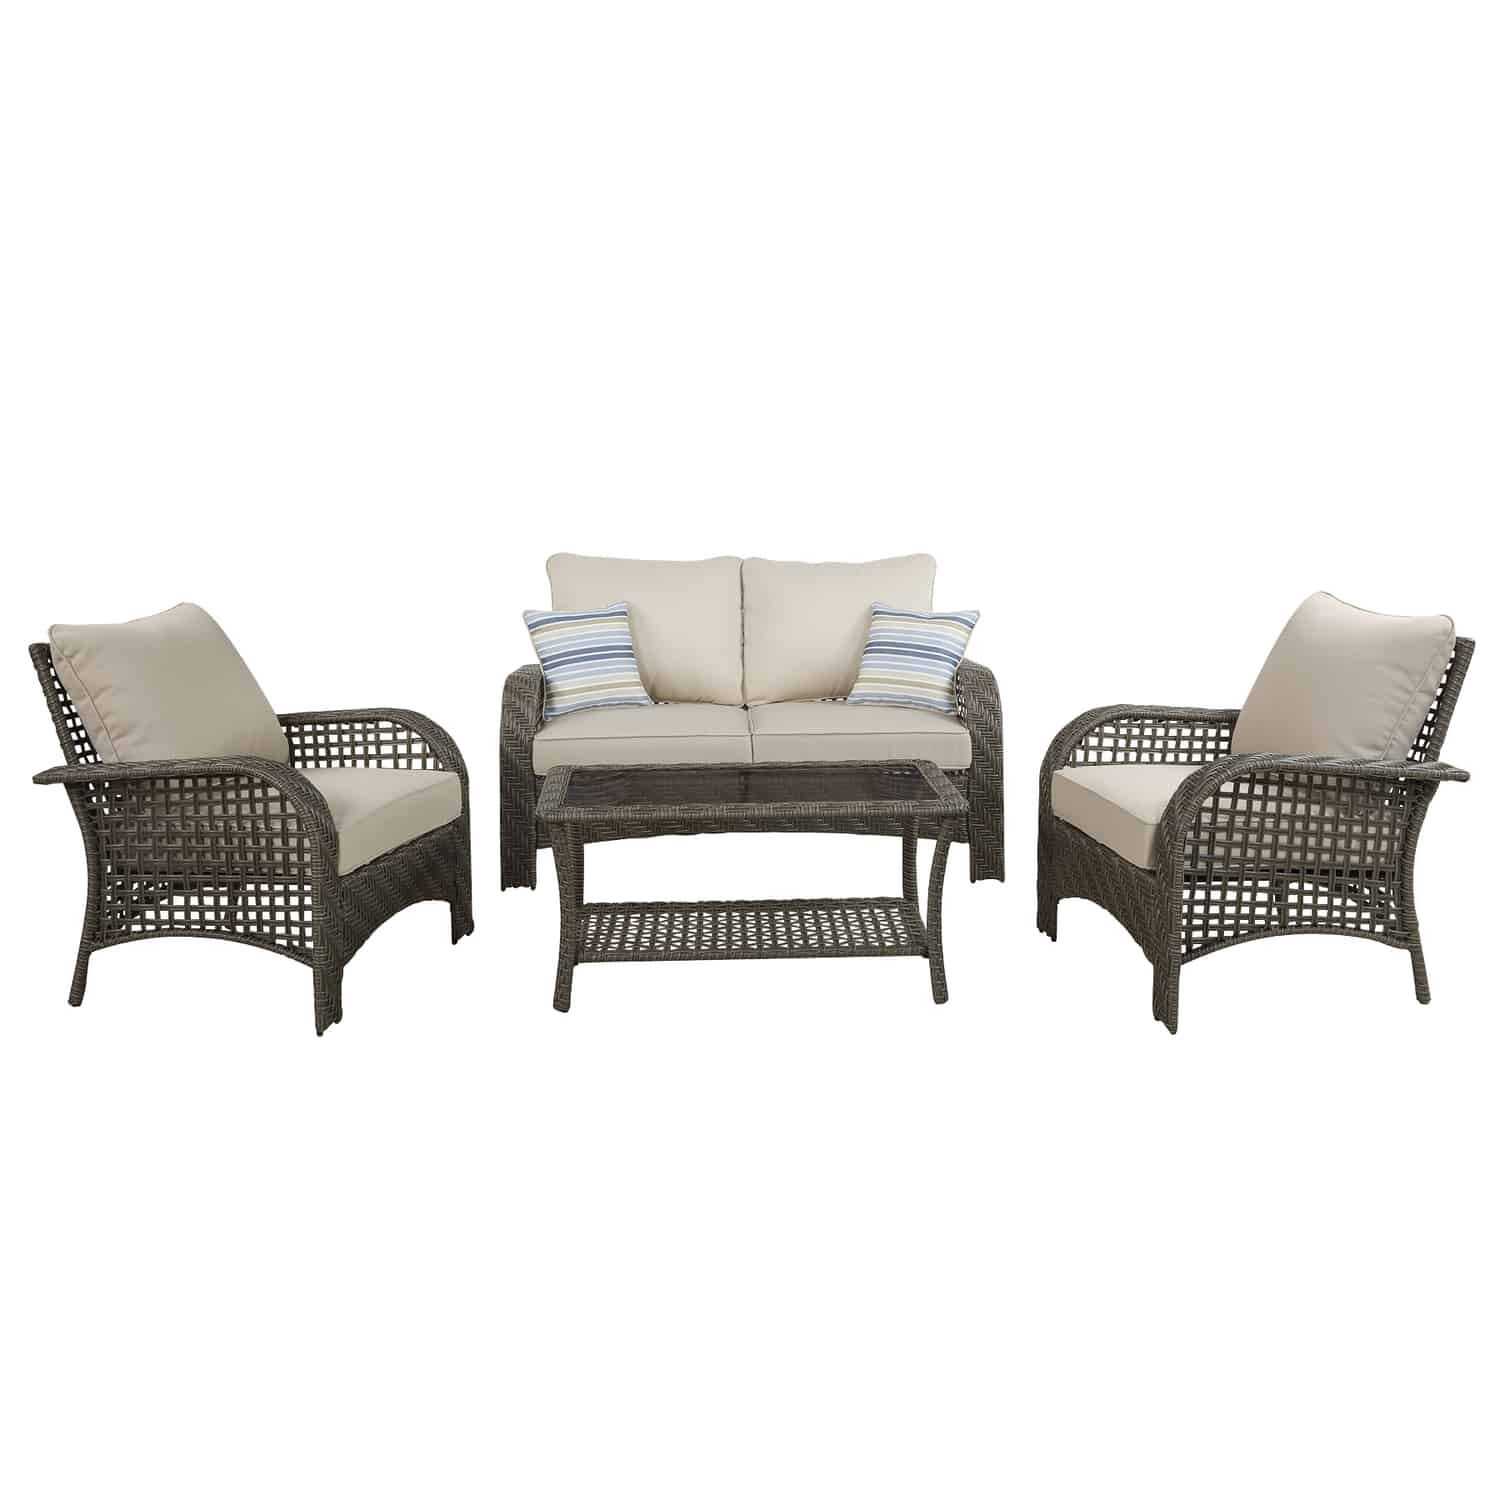 living accents willow 4 pc gray wicker deep seating patio set beige wicker